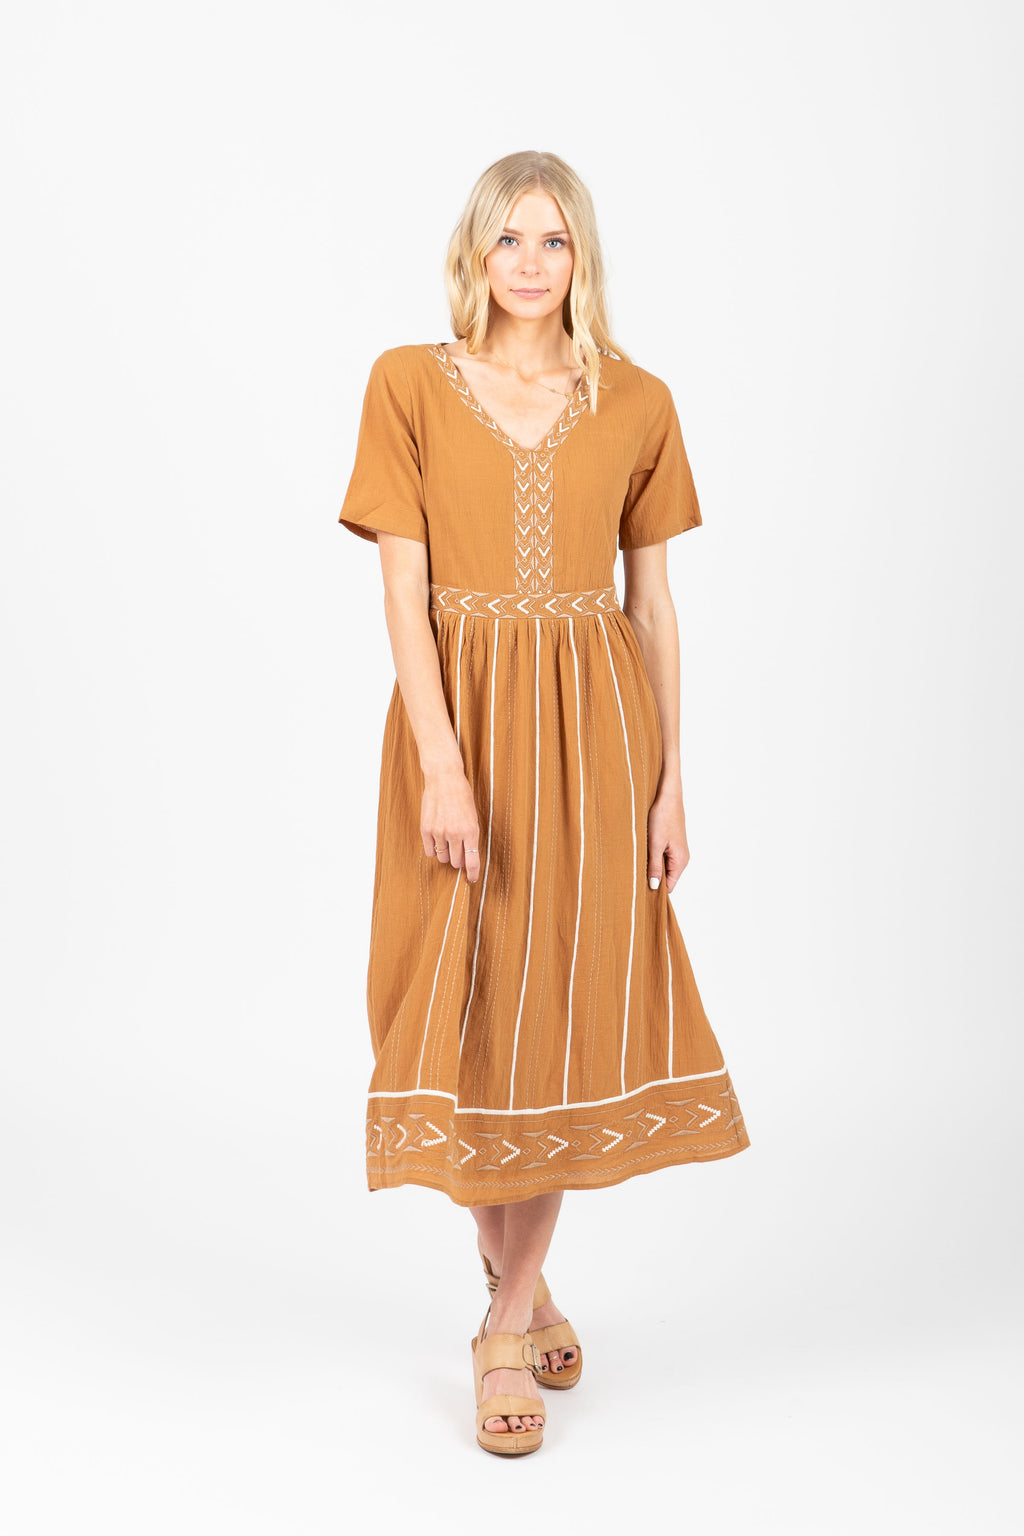 The Fawn Patterned Midi Dress in Coco